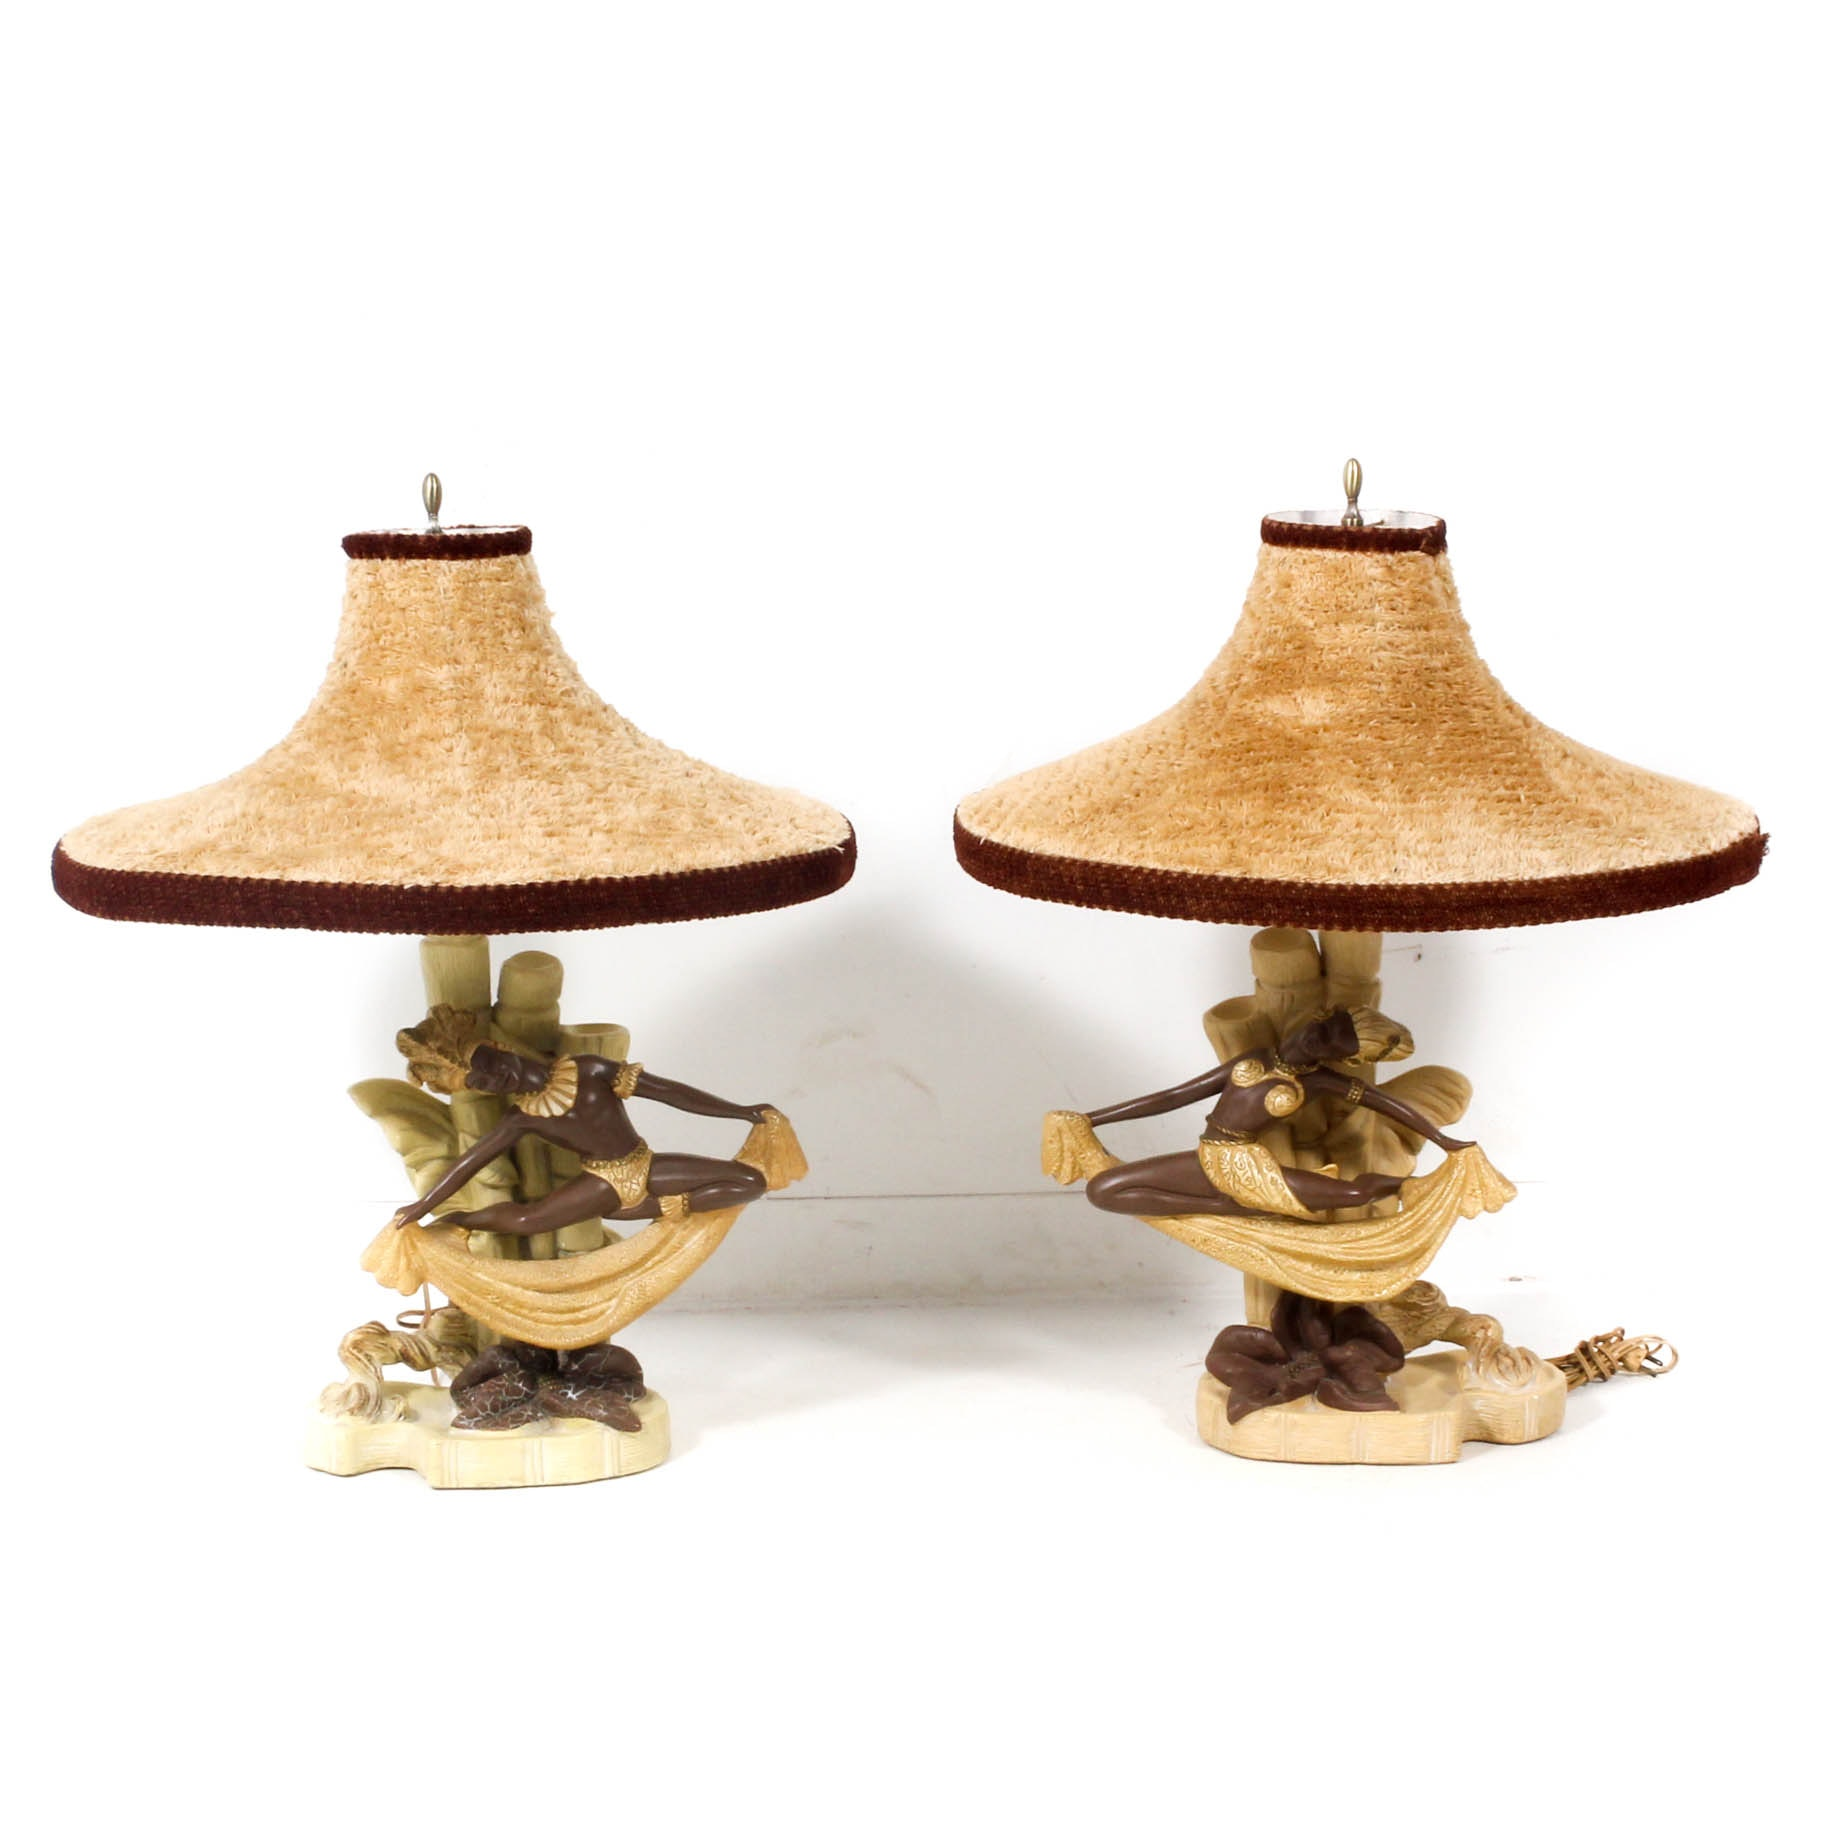 Continental Art Co. Figural Chalkware Table Lamps with Chenille Lamp Shades